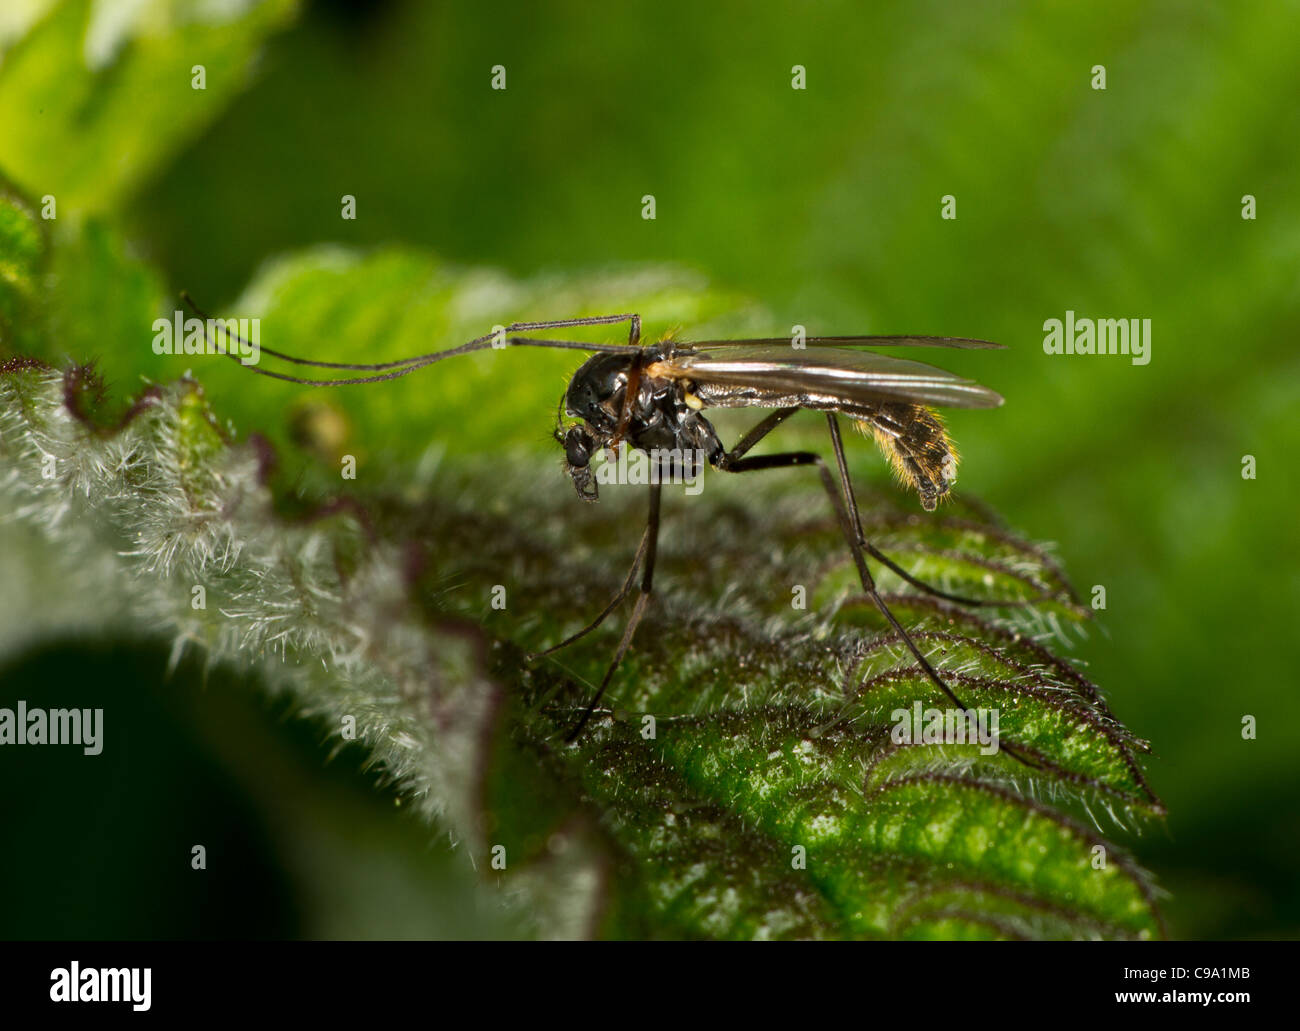 A gnat resting on a nettle; possibly a window midge (Sylvicola fenestralis) - Stock Image